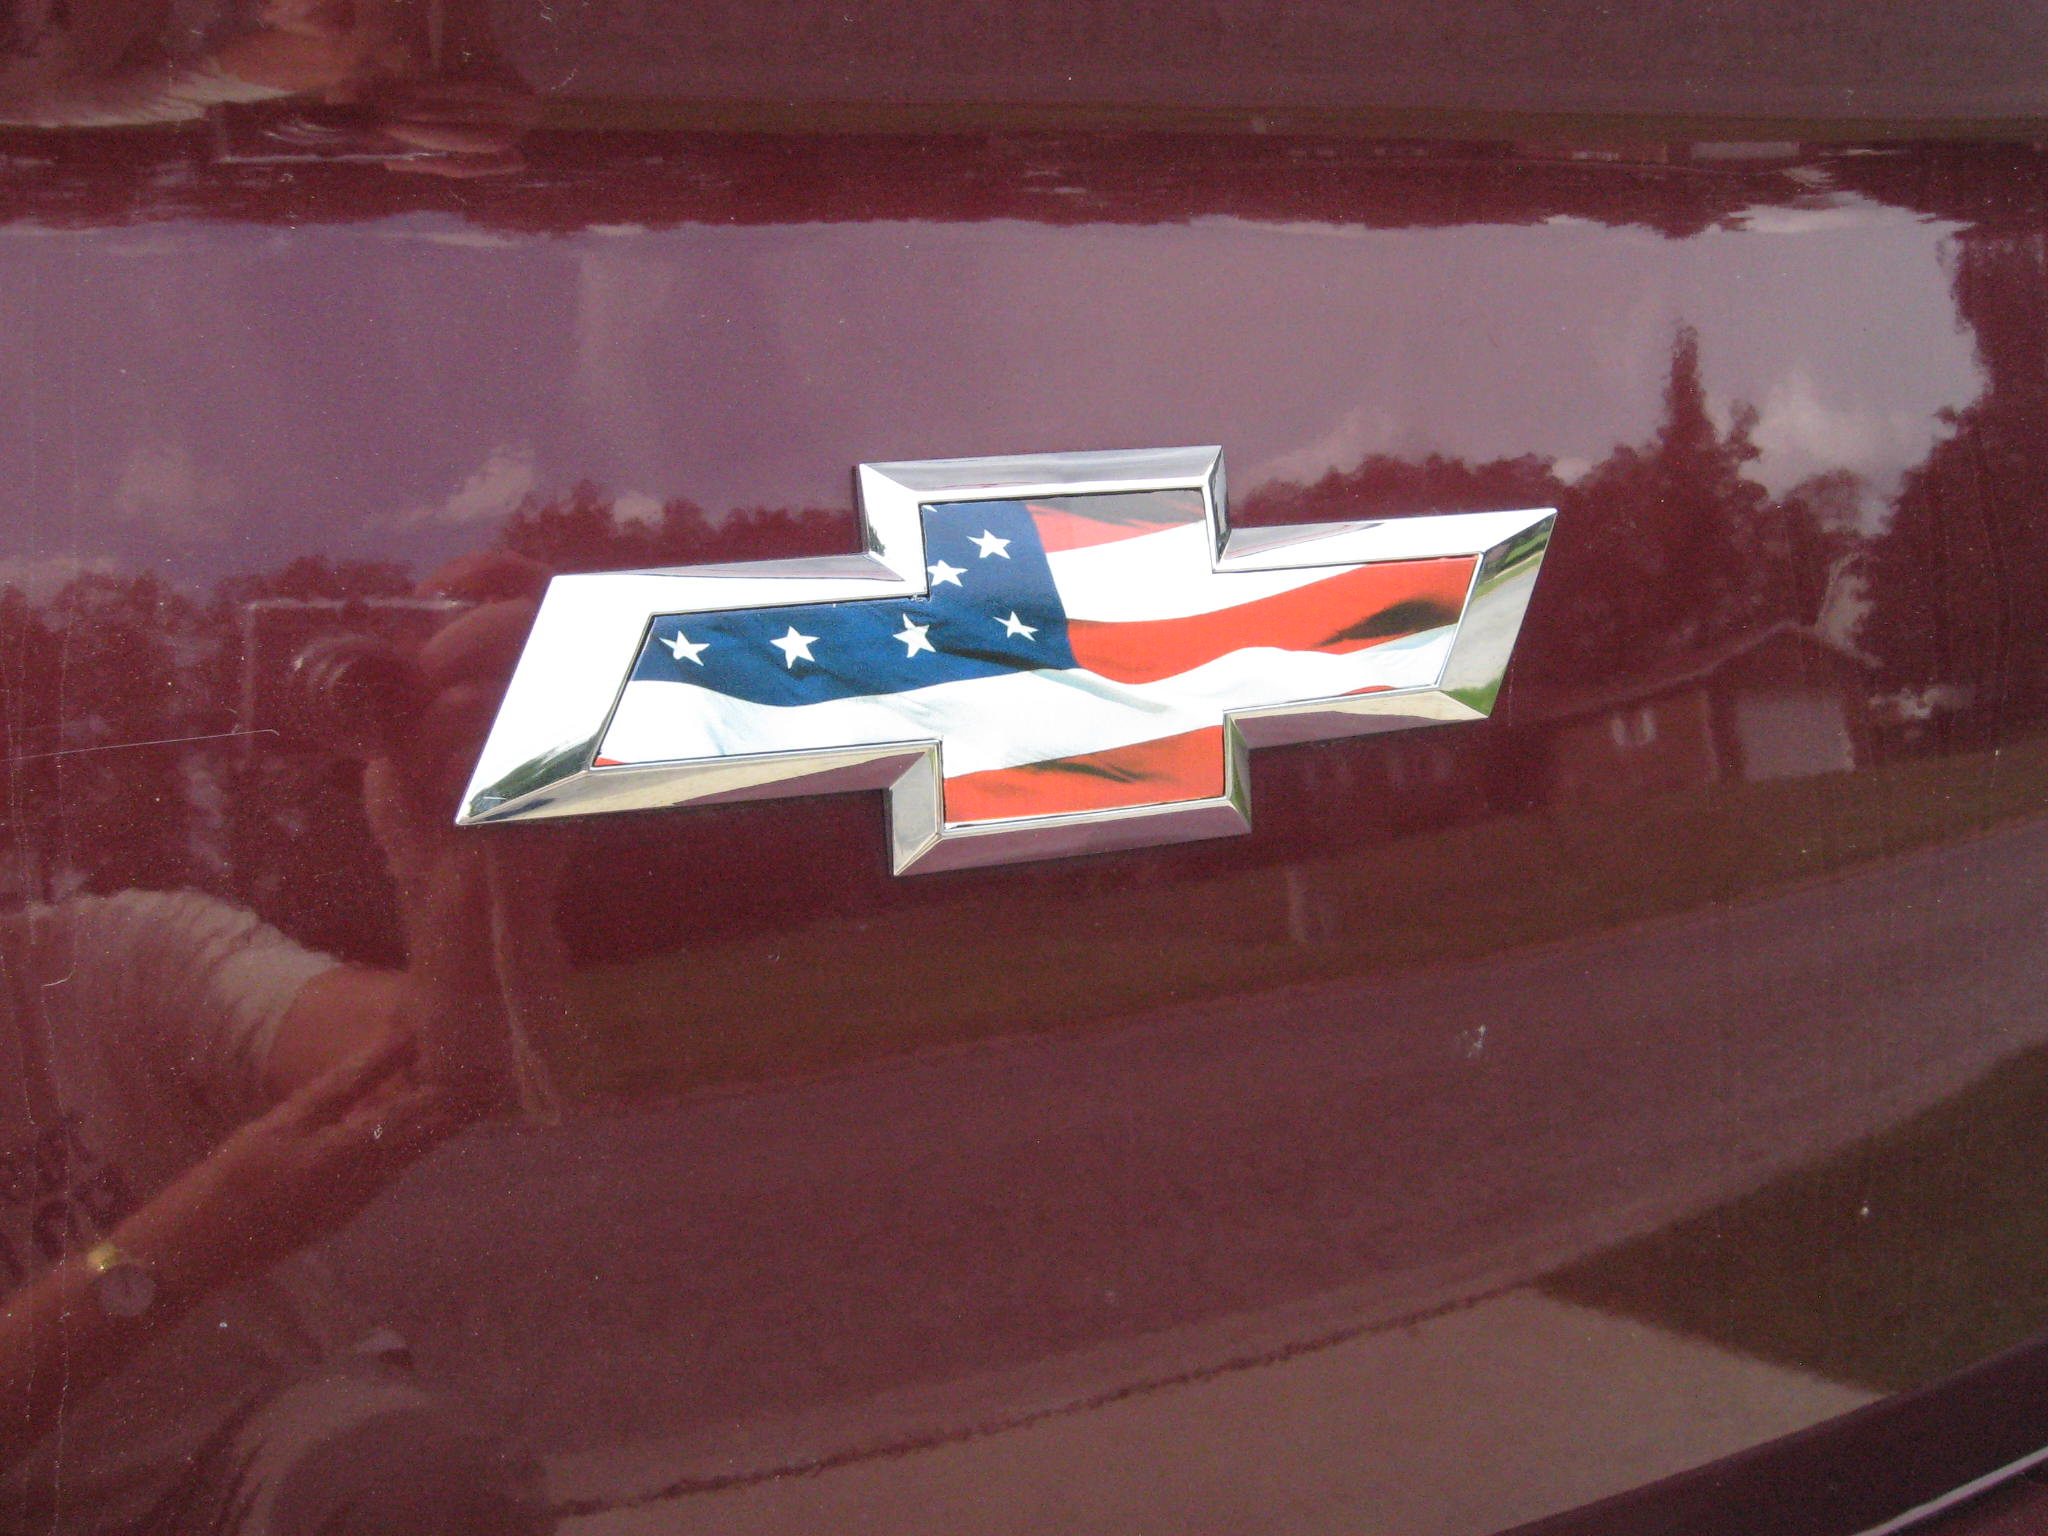 CHEVY MALIBU AMERICAN FLAG GRILLE TRUNK EMBLEM OVERLAY DECALS 2013 2014 2015